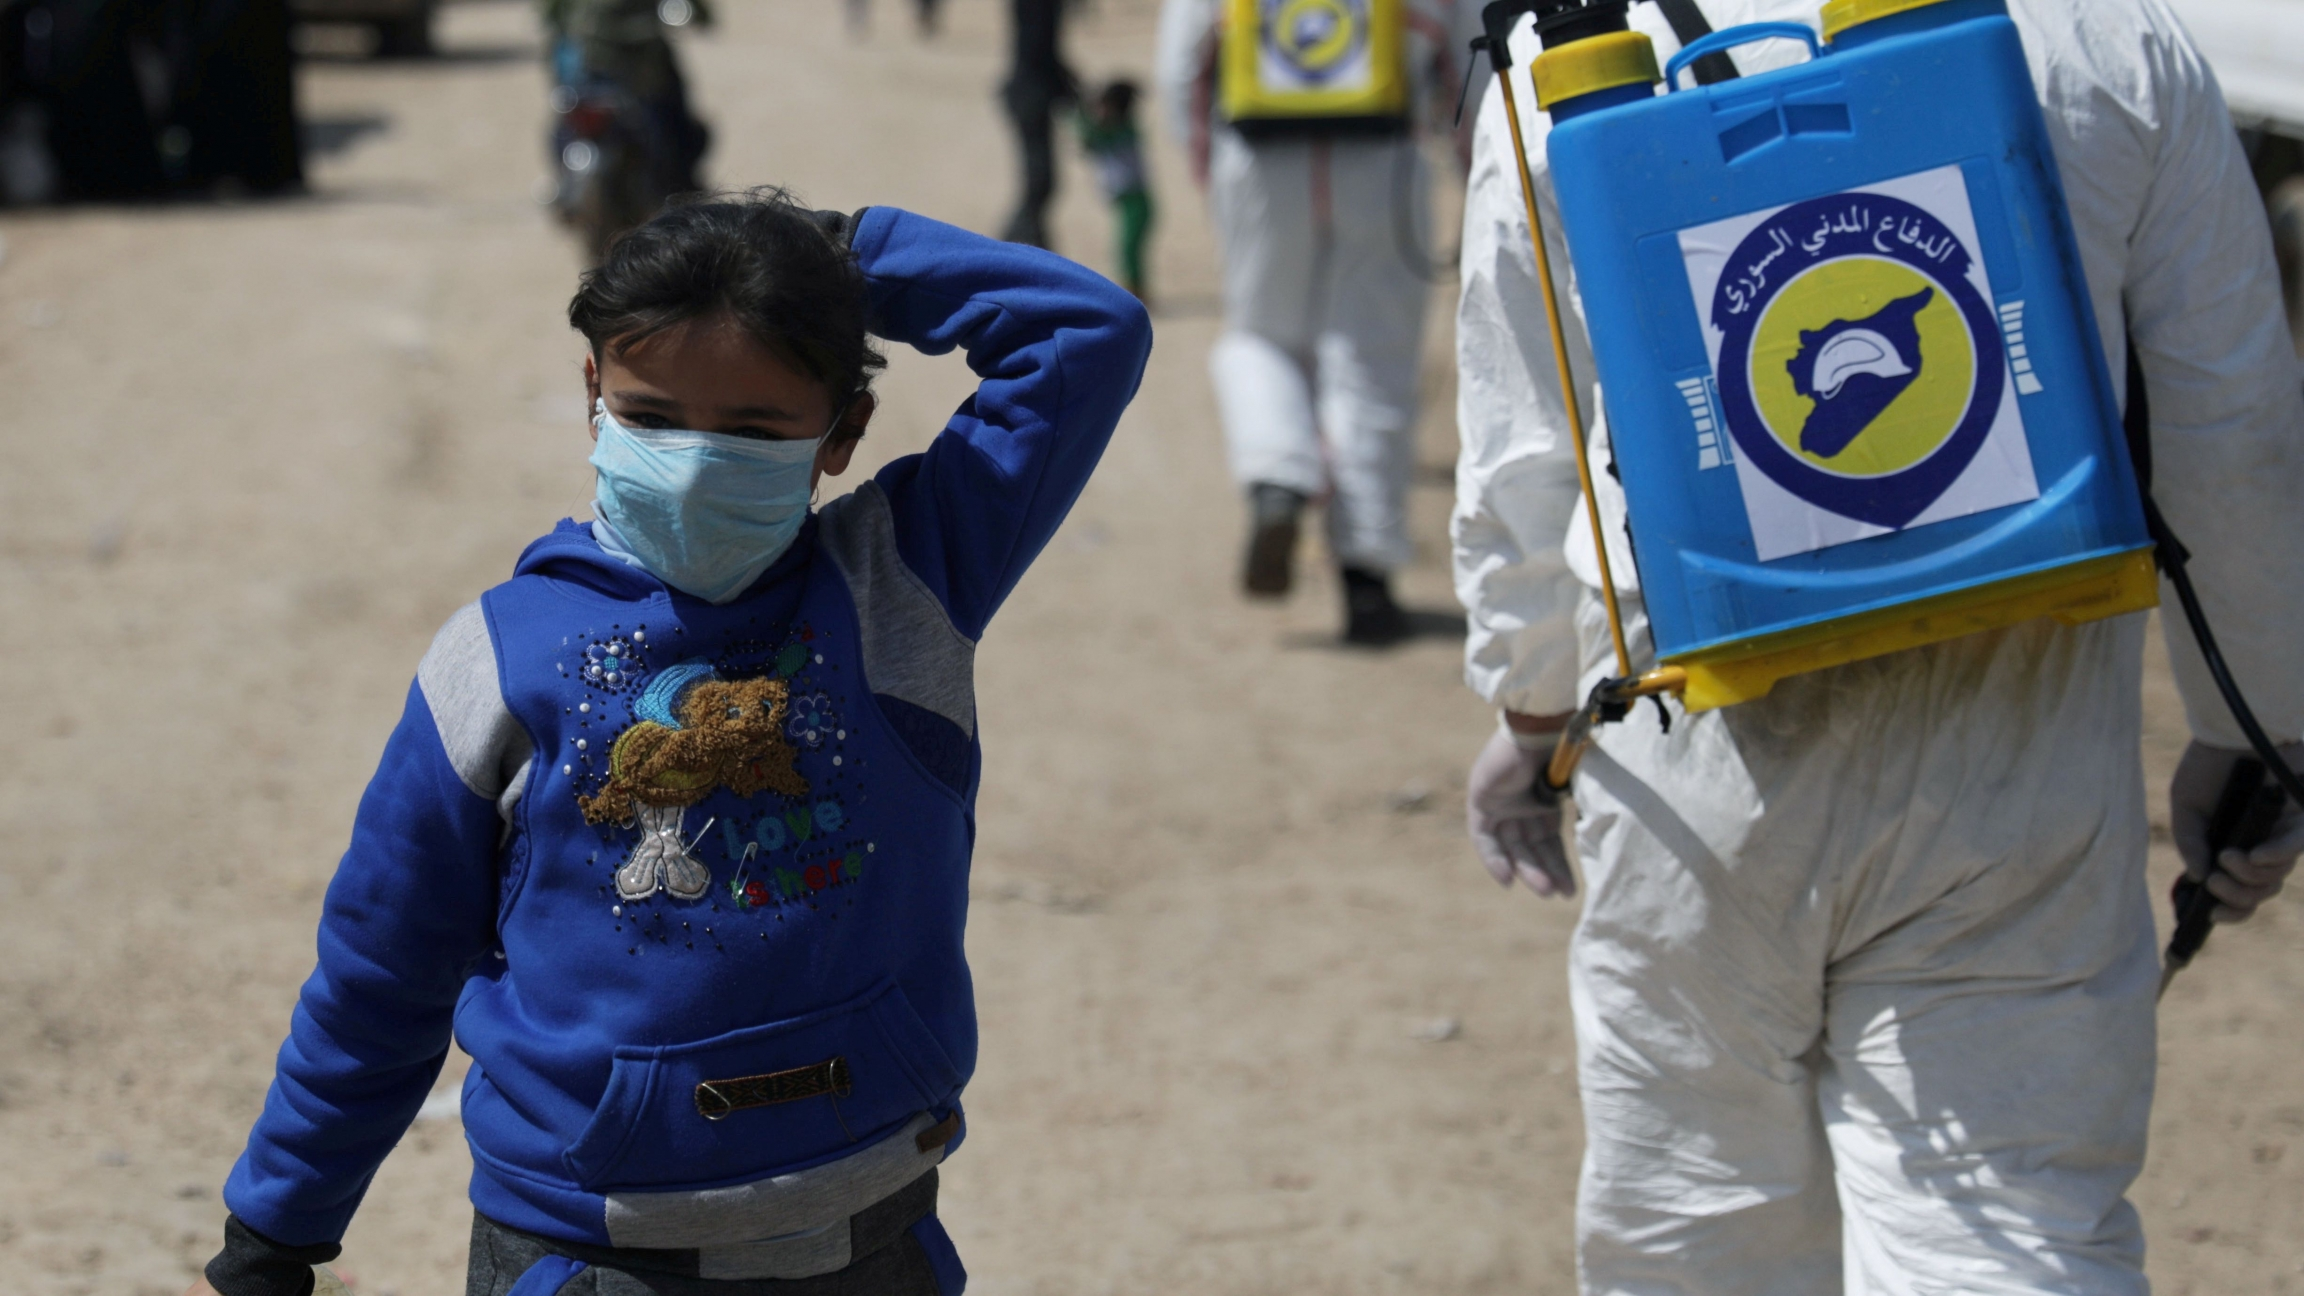 An internally displaced Syrian girl wears a face mask as members of the Syrian Civil defence sanitize the Bab al-Nour internally displaced persons camp, to prevent the spread of the coronavirus disease (COVID-19) in Azaz, Syria, March 26, 2020.